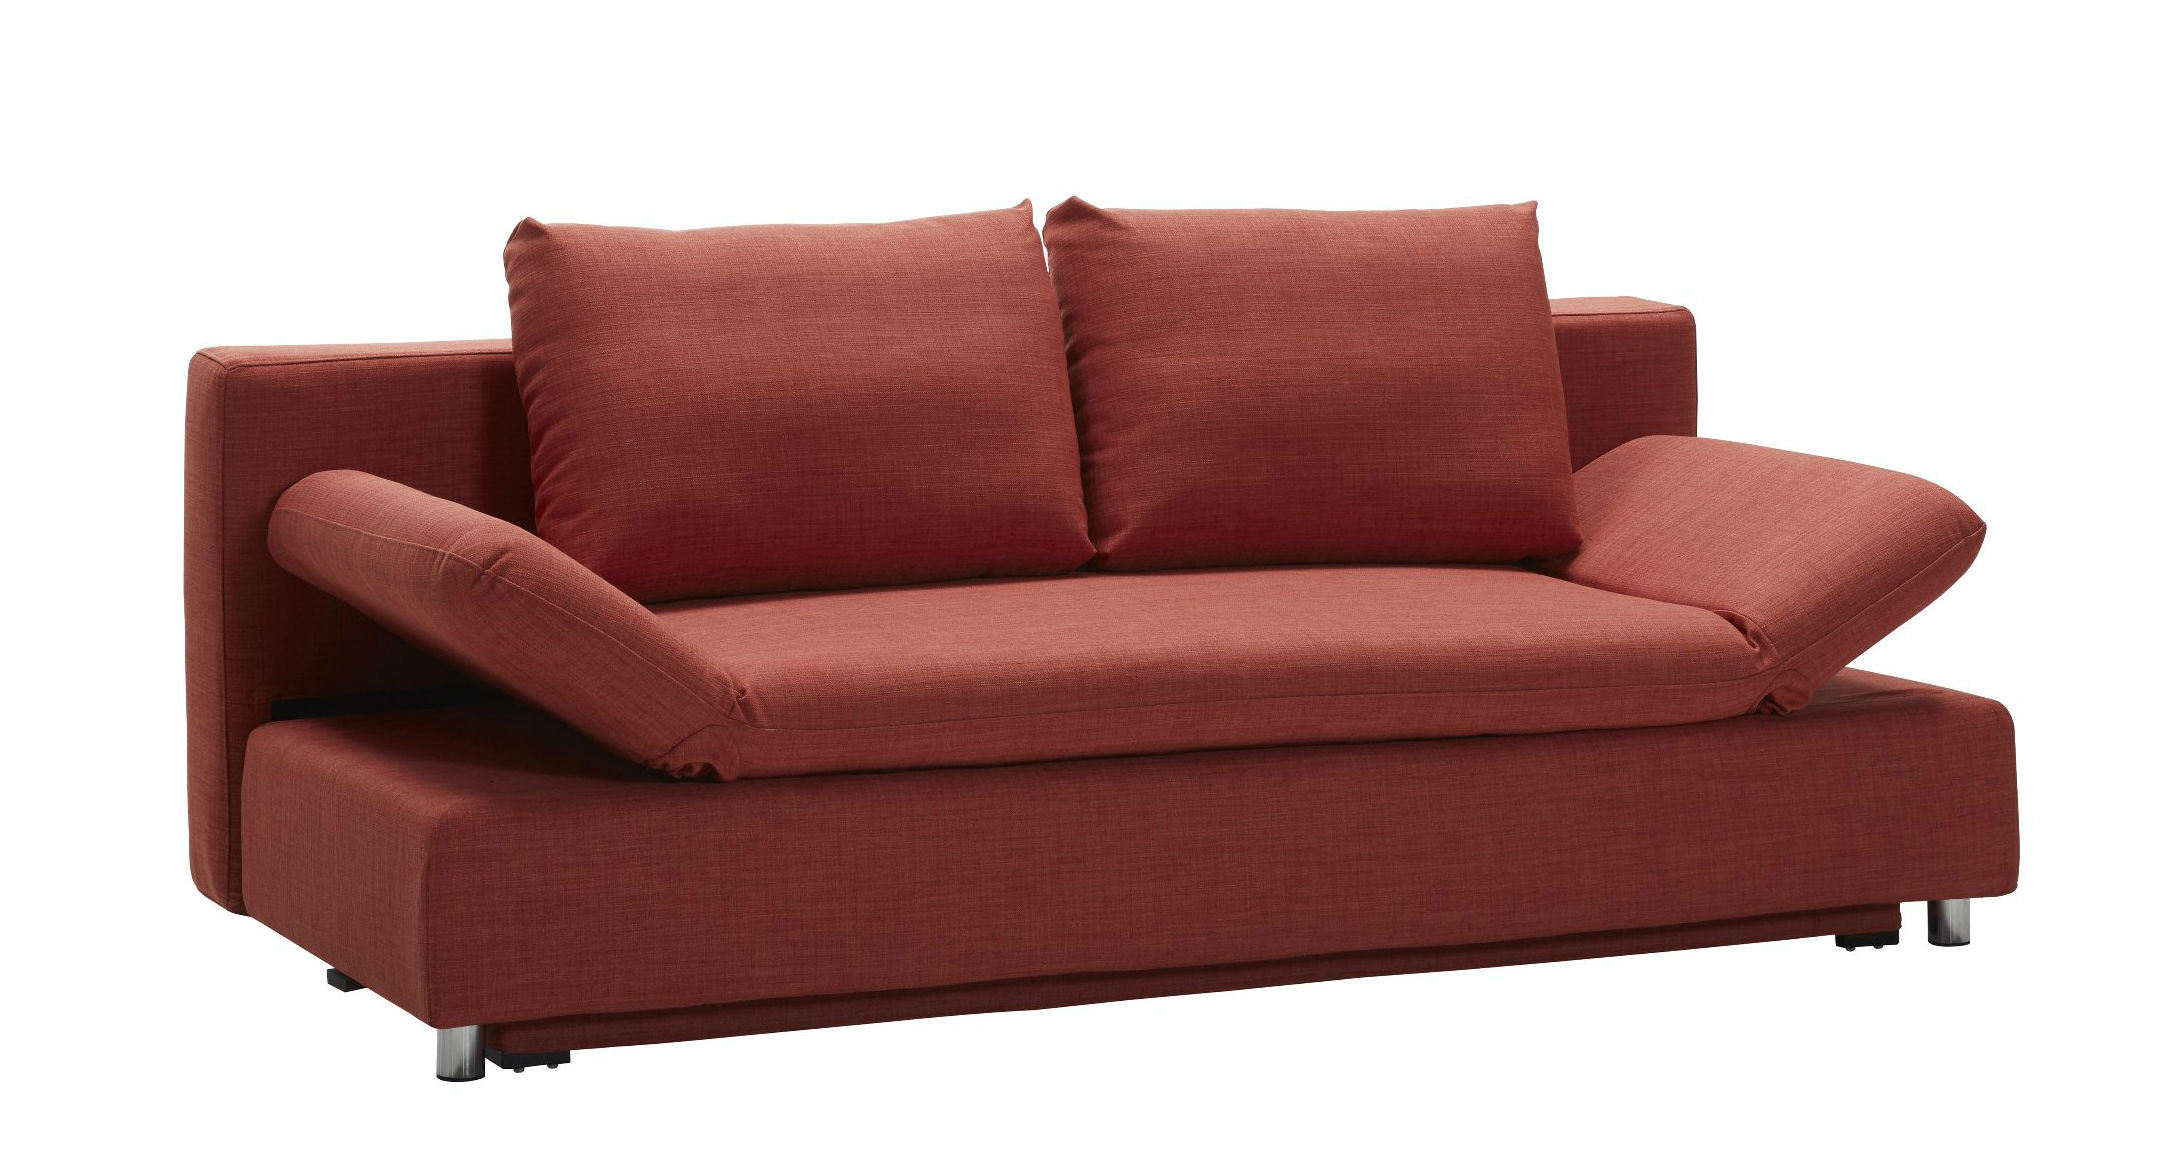 China Fabric Sofa Cum Bed With Storage And Changeable Armrests   China Sofa  Bed, Living Room Furniture